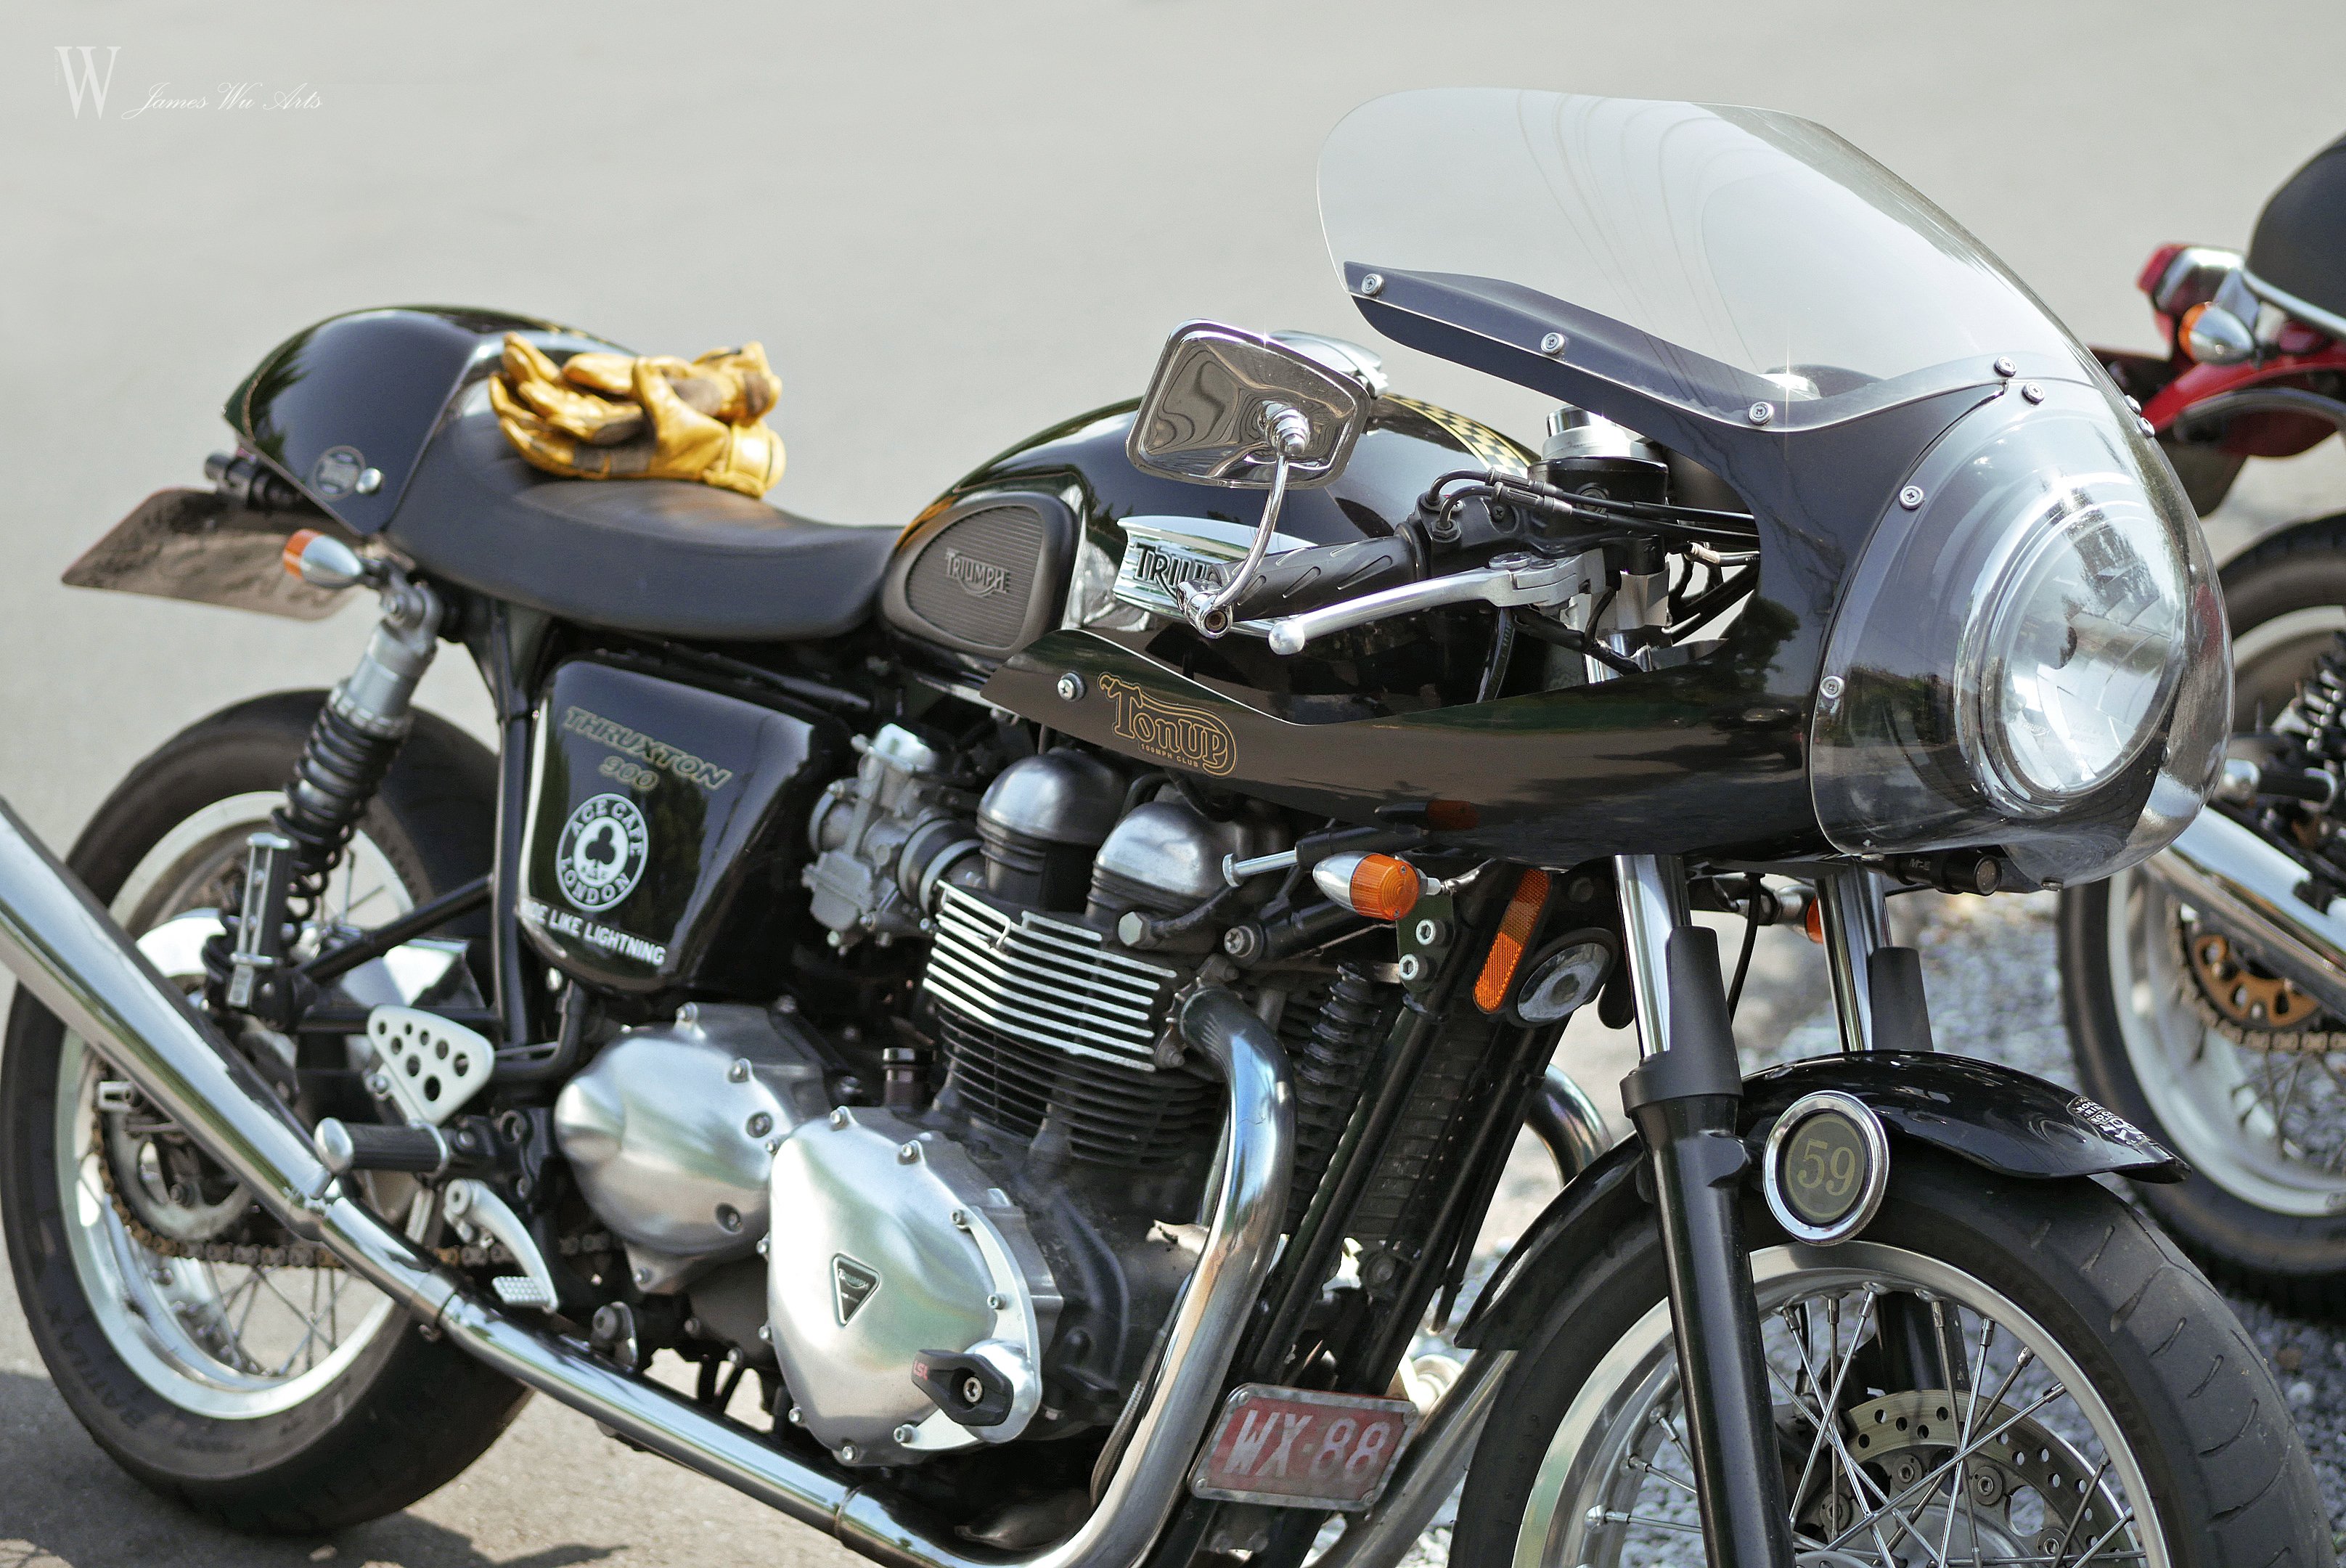 TONUP ROCKERS CAFE RACER (53)